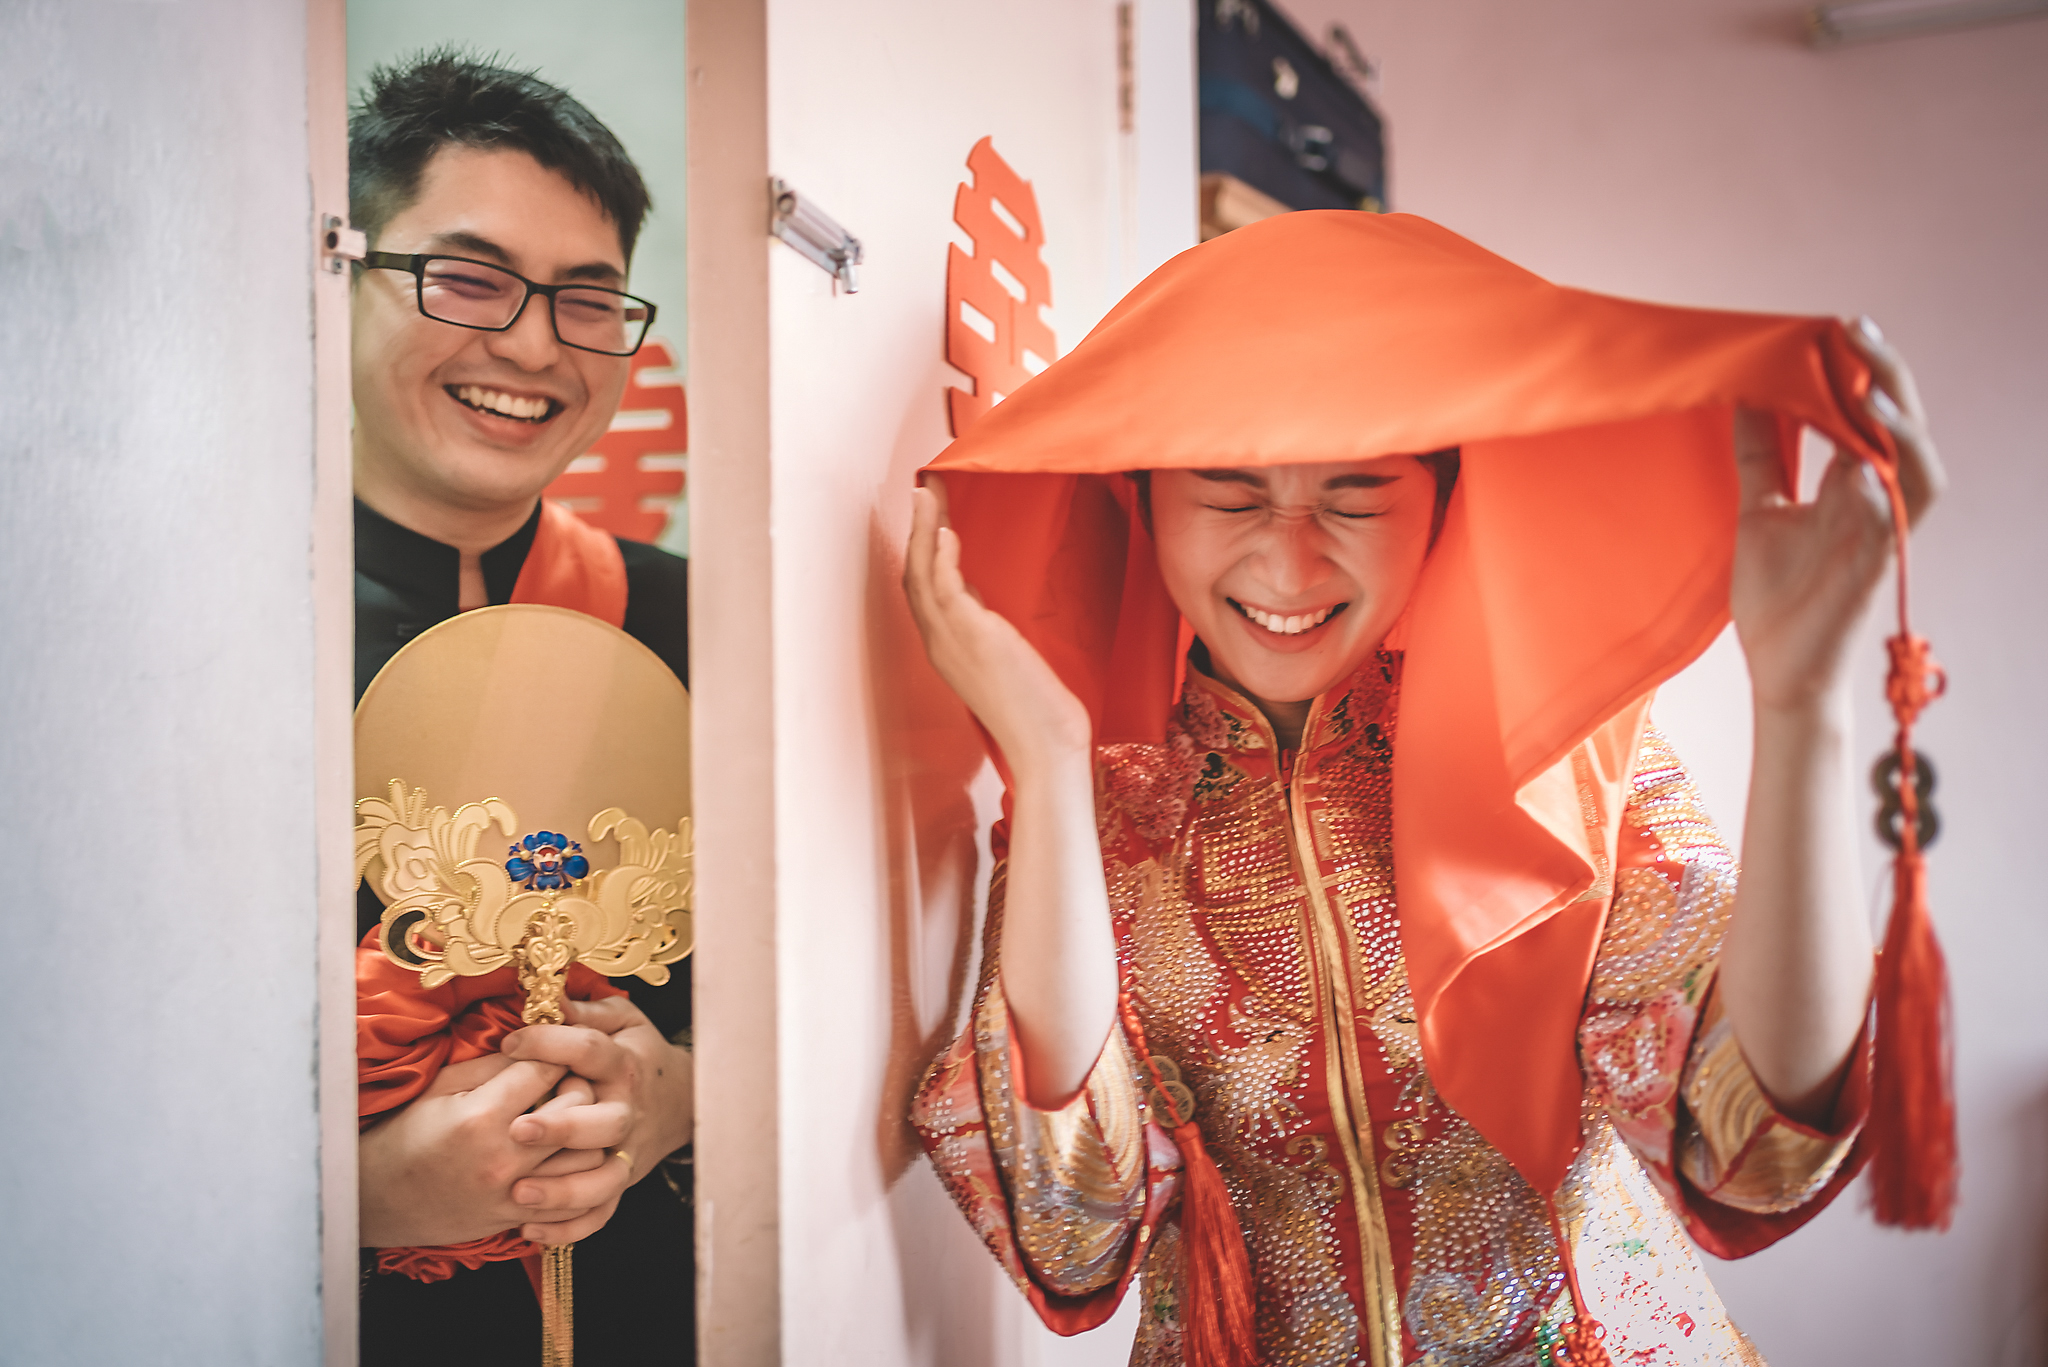 asian-bride-hiding-behind-door-from-laughing-groom-edwin-tan-photography-malaysia